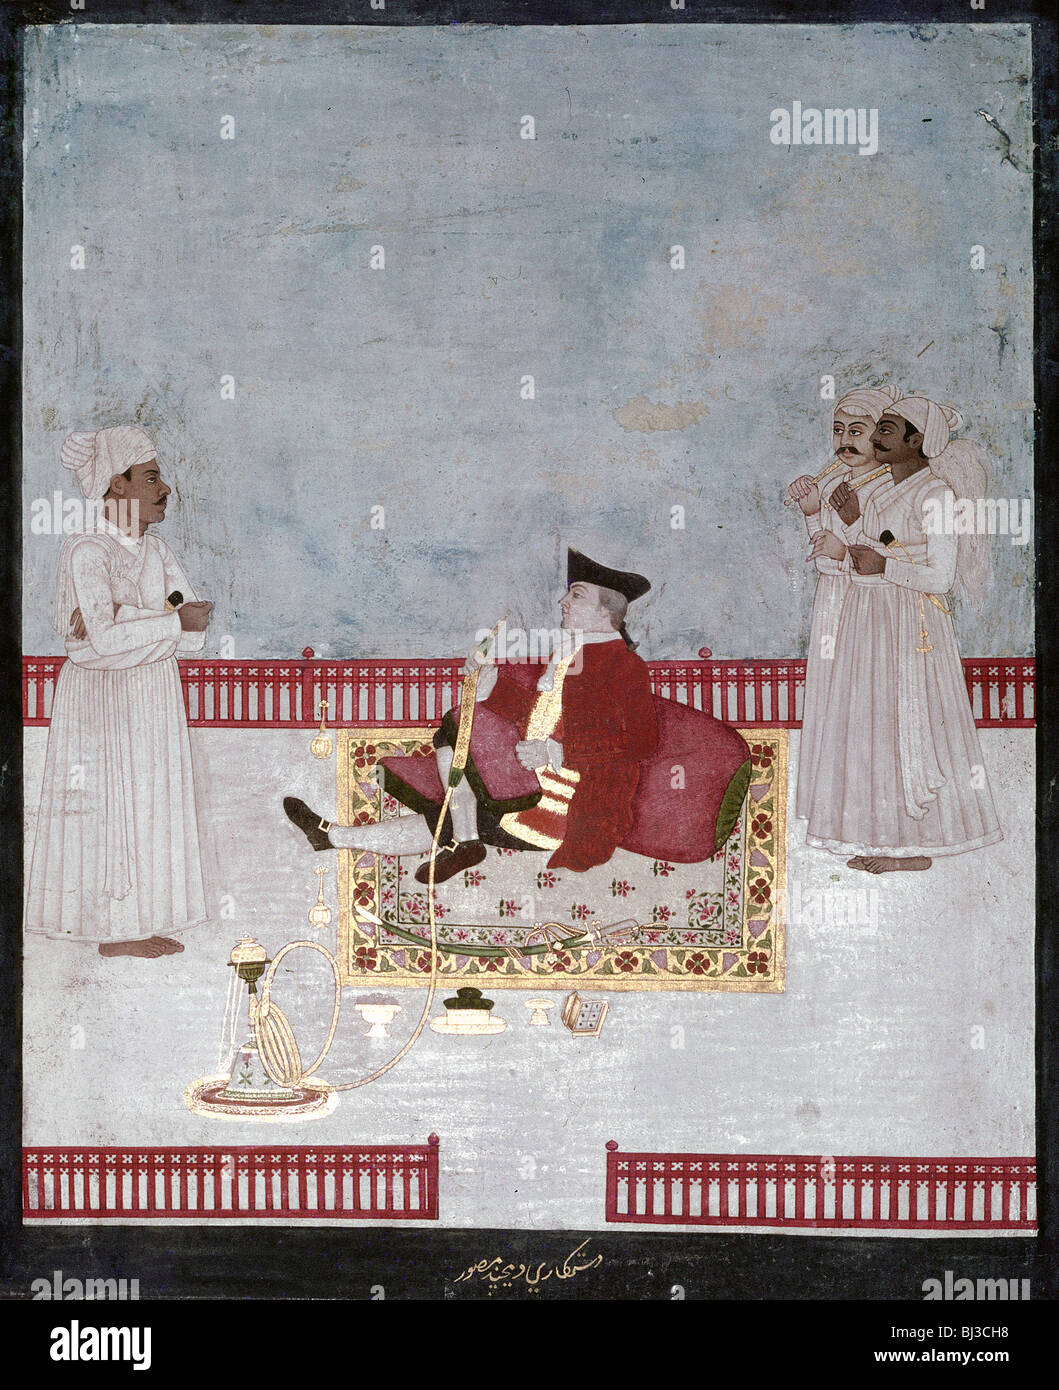 An official of the East India Company enjoying smoking a water-pipe, Mughal, India, c1760. Artist: Werner Forman - Stock Image